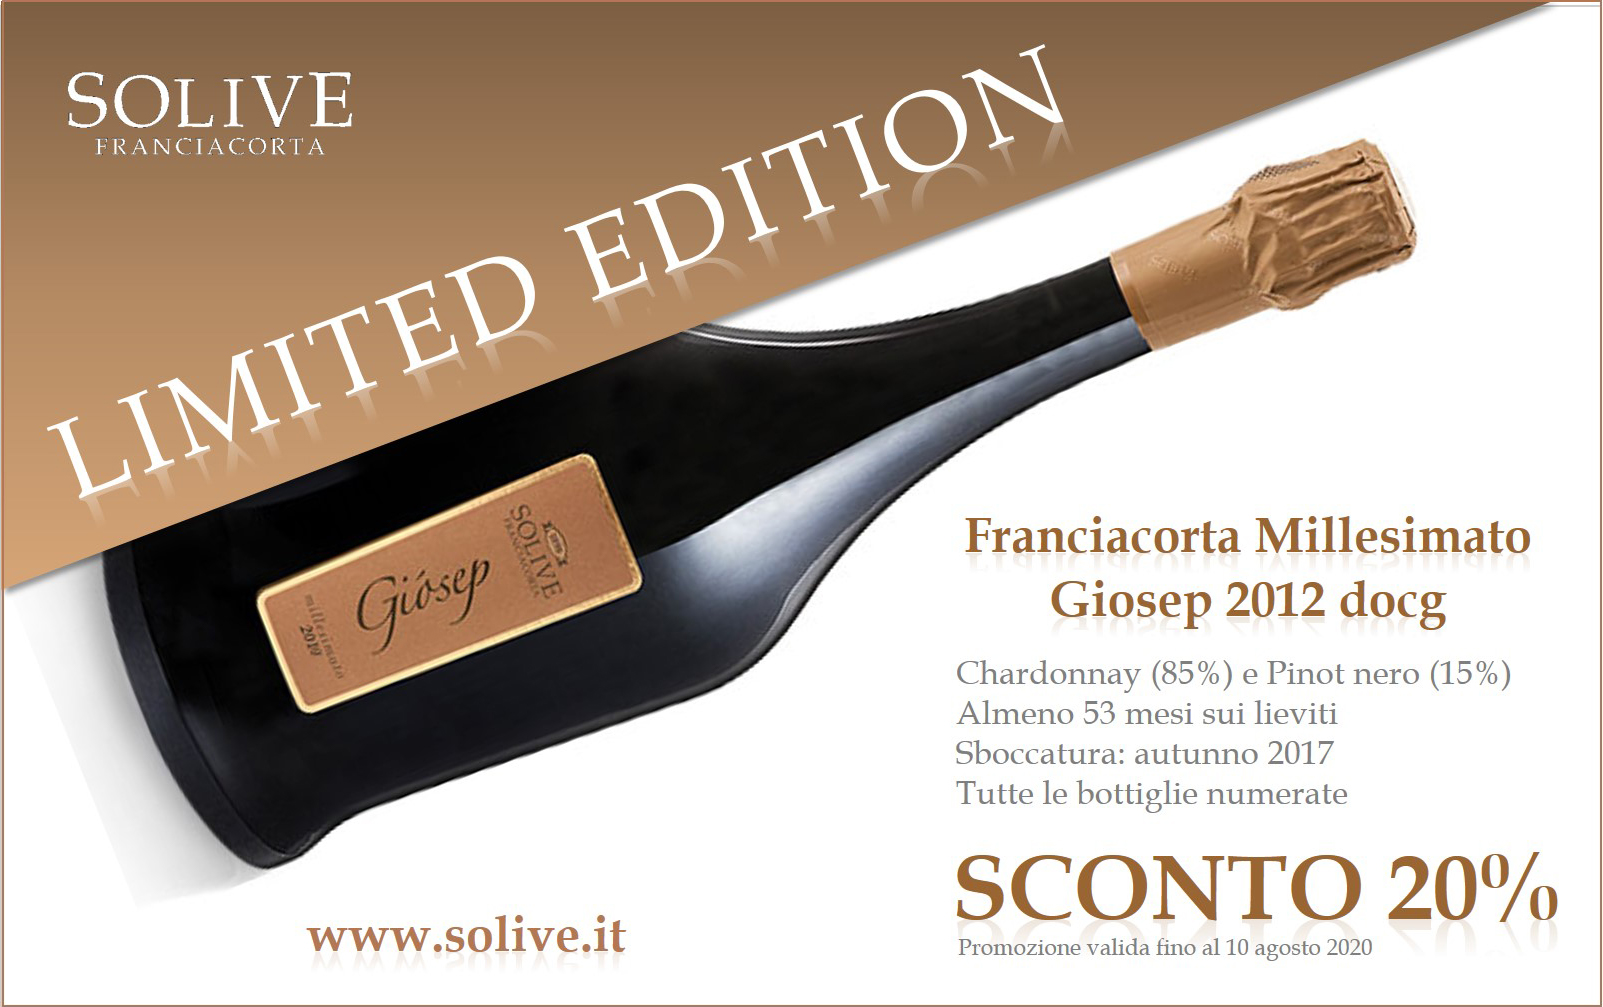 GIOSEP 2012 – LIMITED EDITION SCONTO 20%